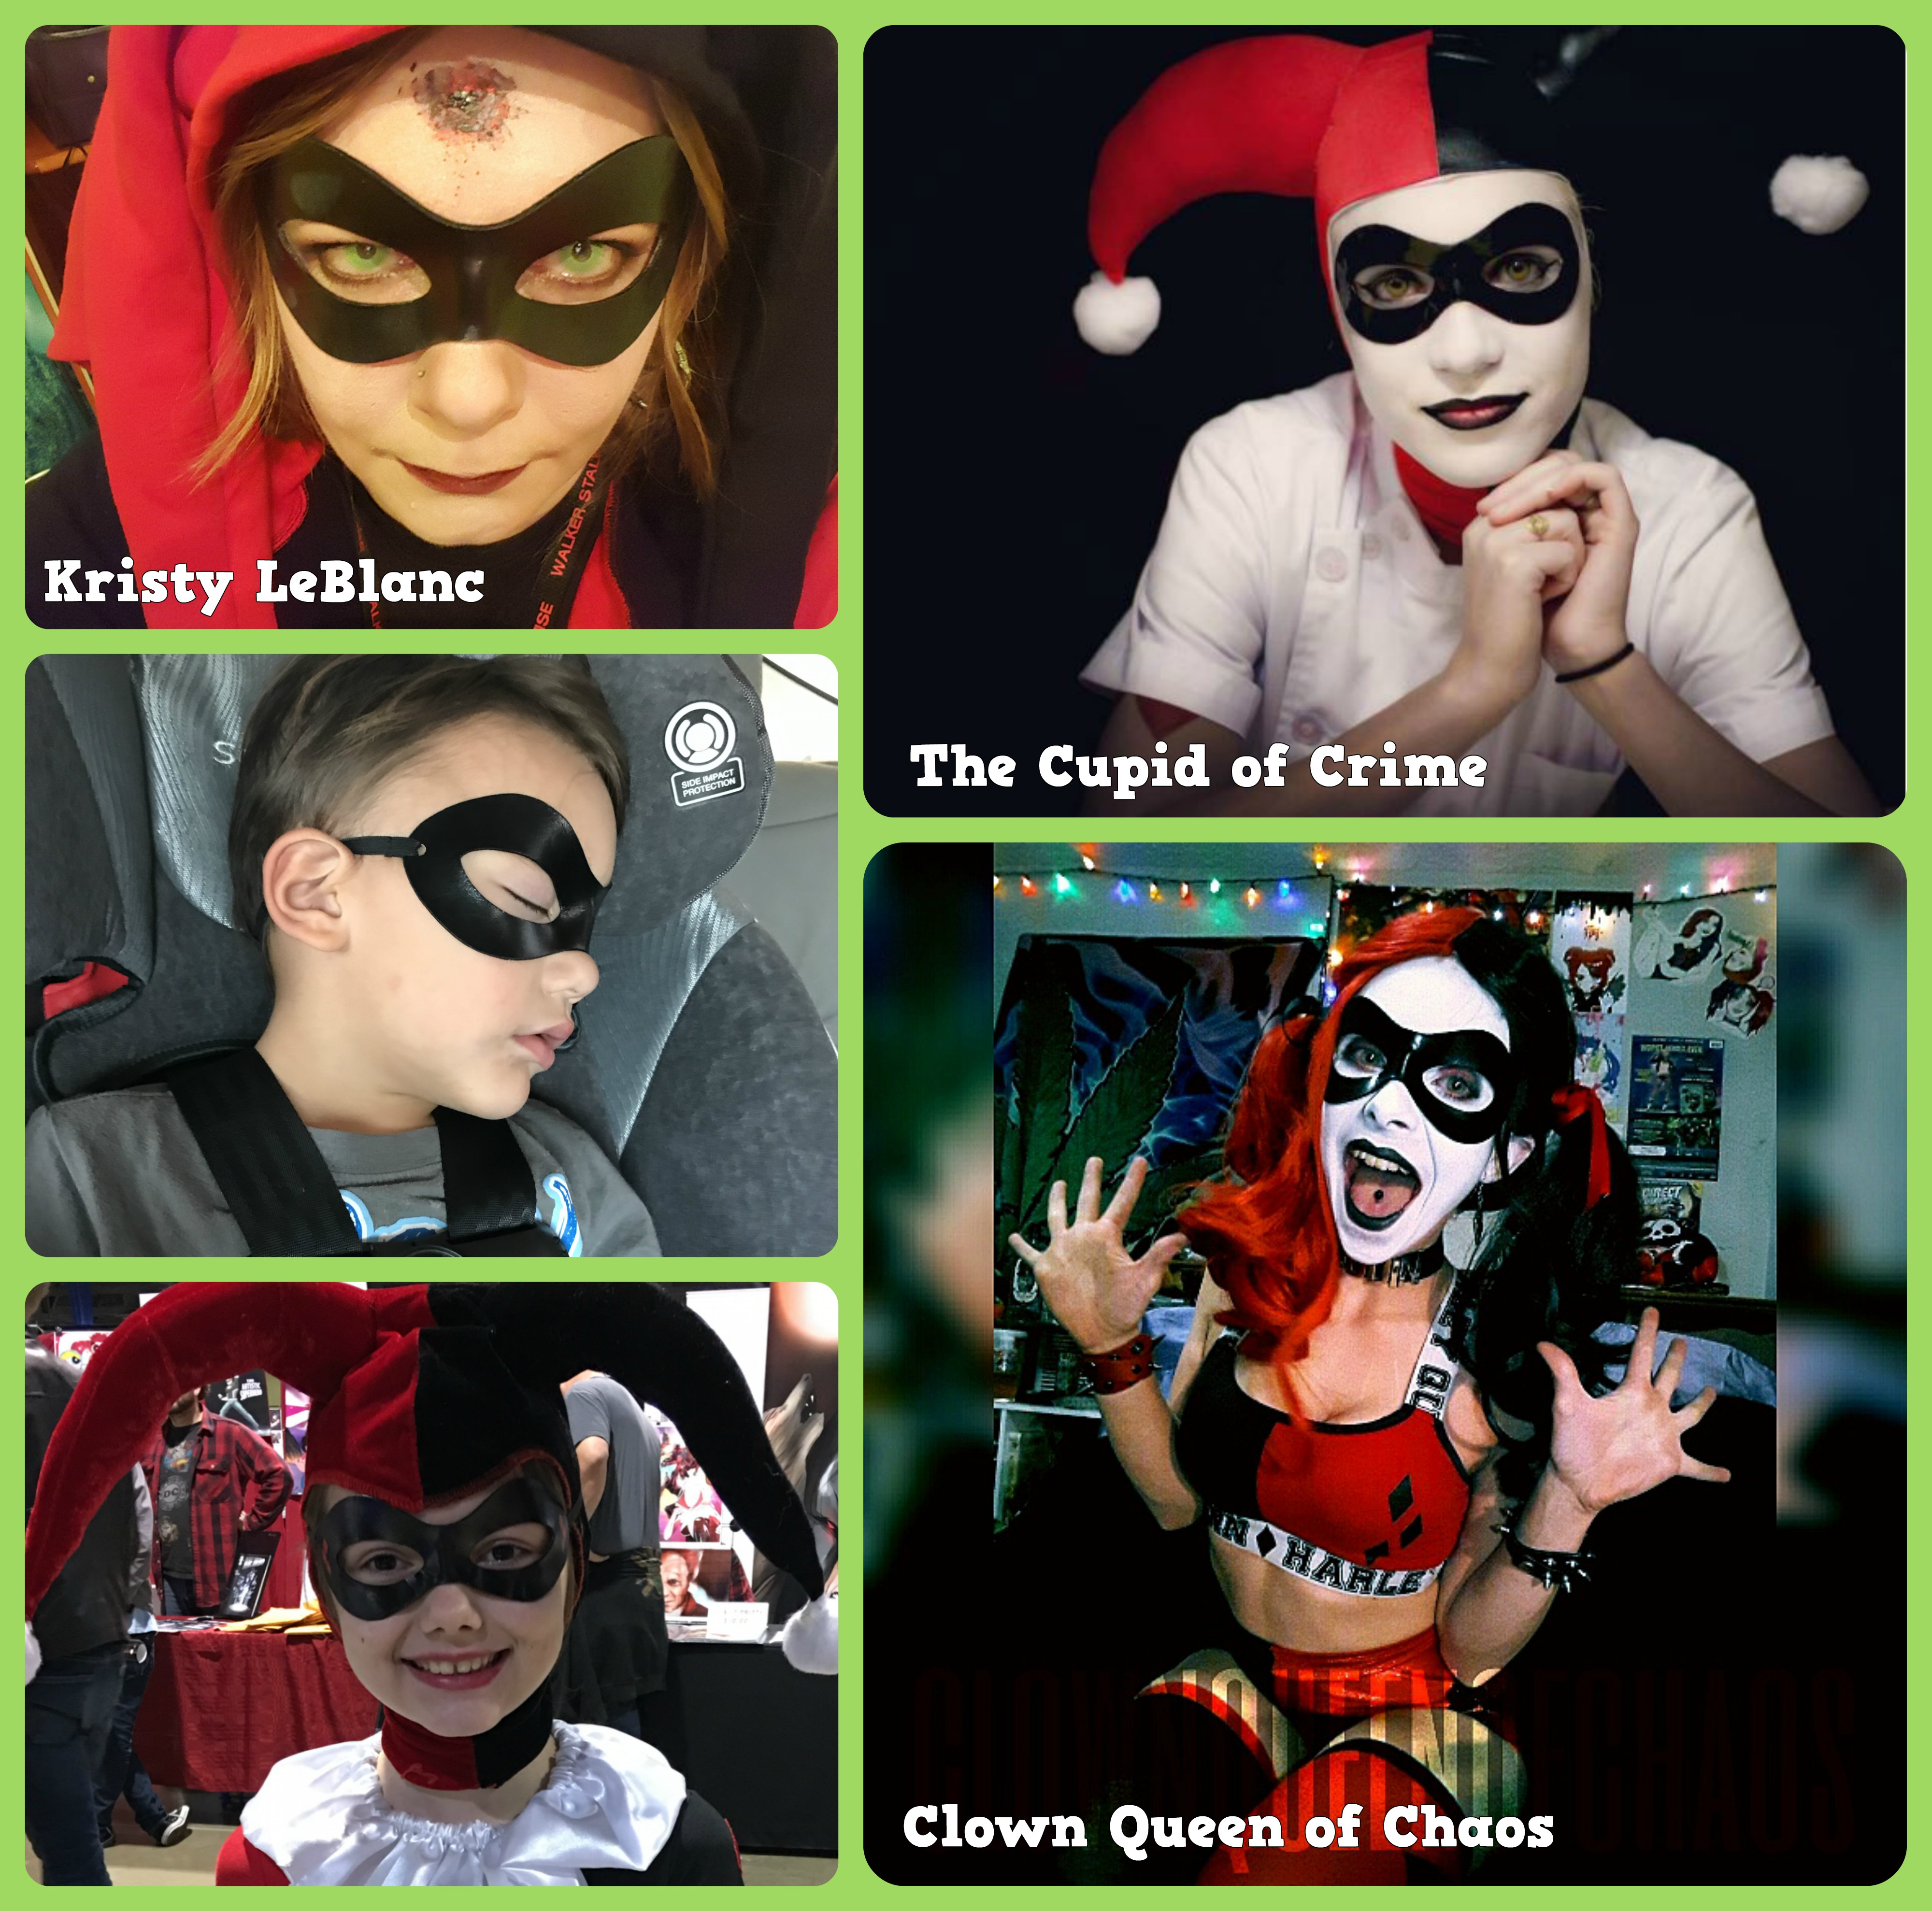 harley-quinn-mask-cosplay-collage-2.jpg